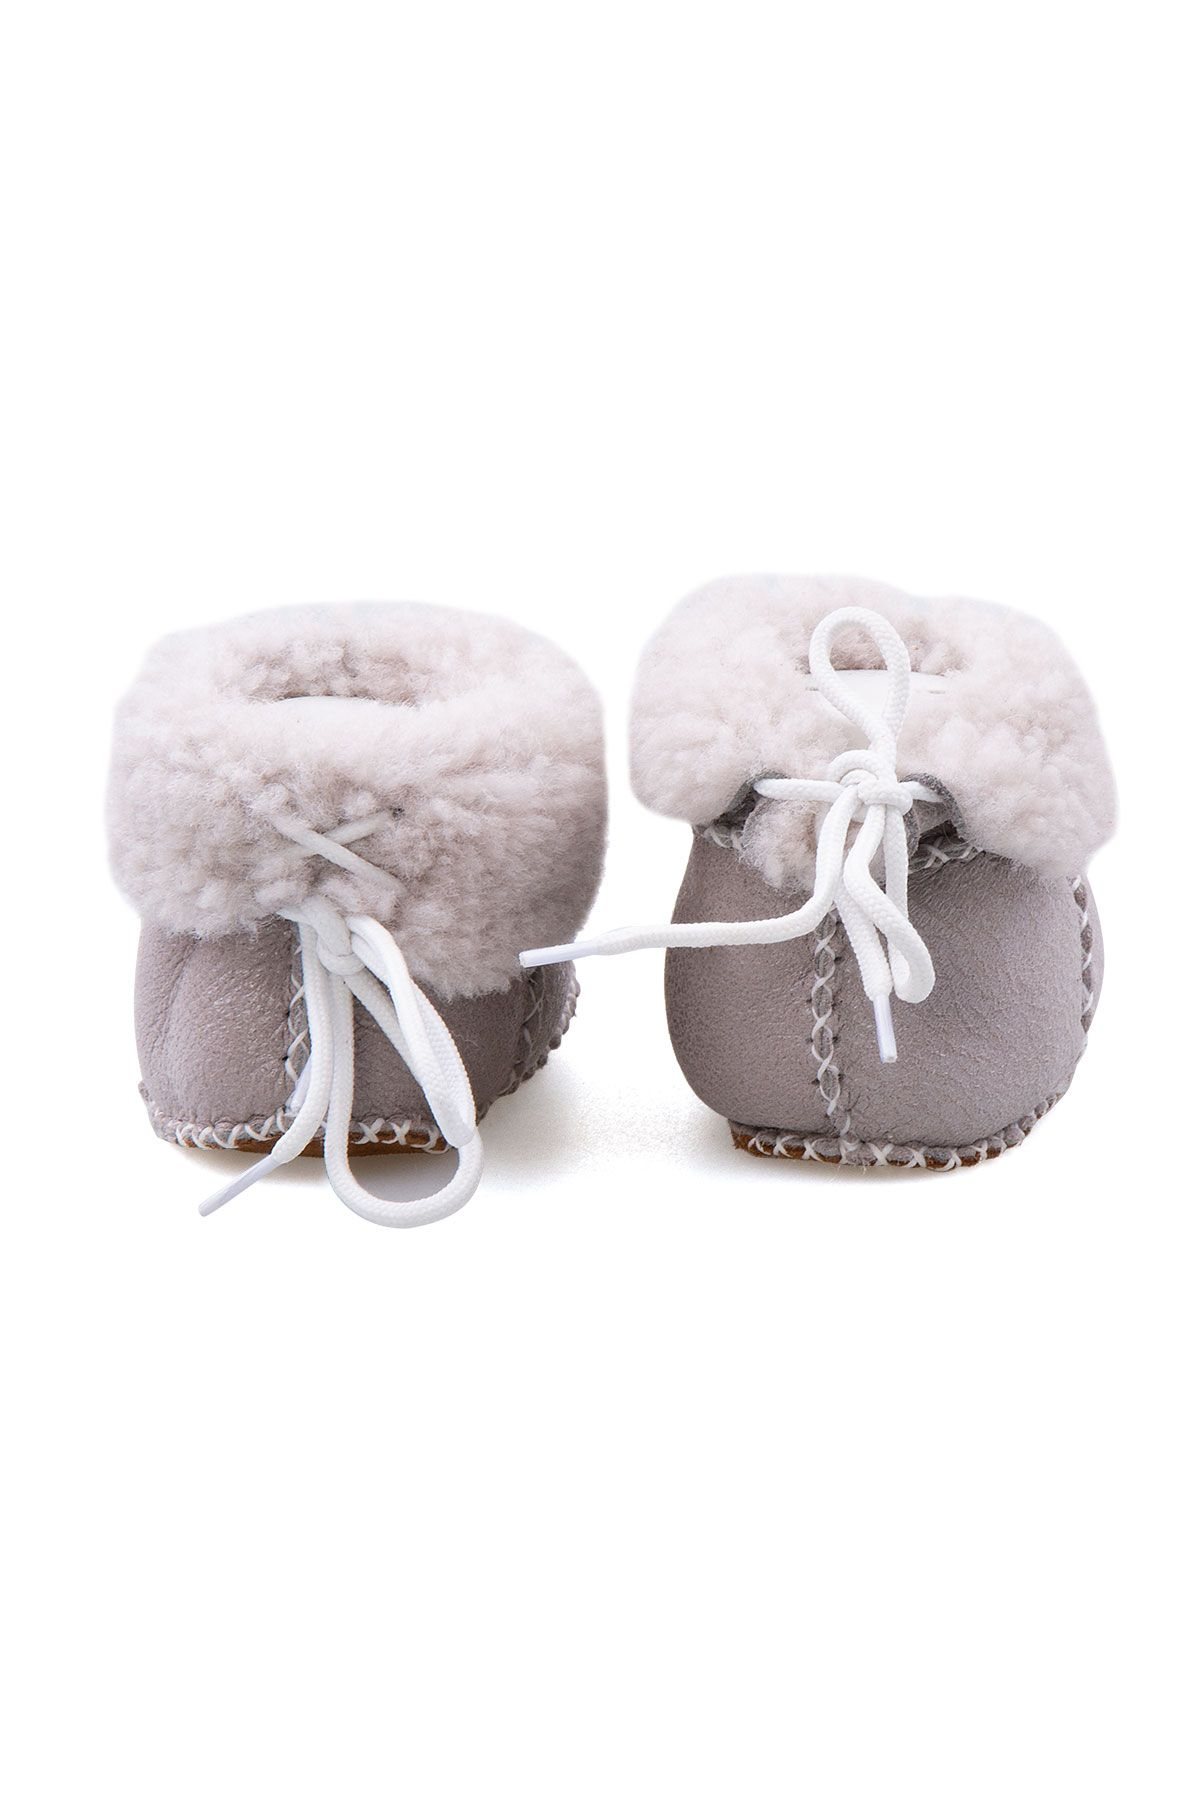 Pegia Shearling Baby's Booties 141113 Gray